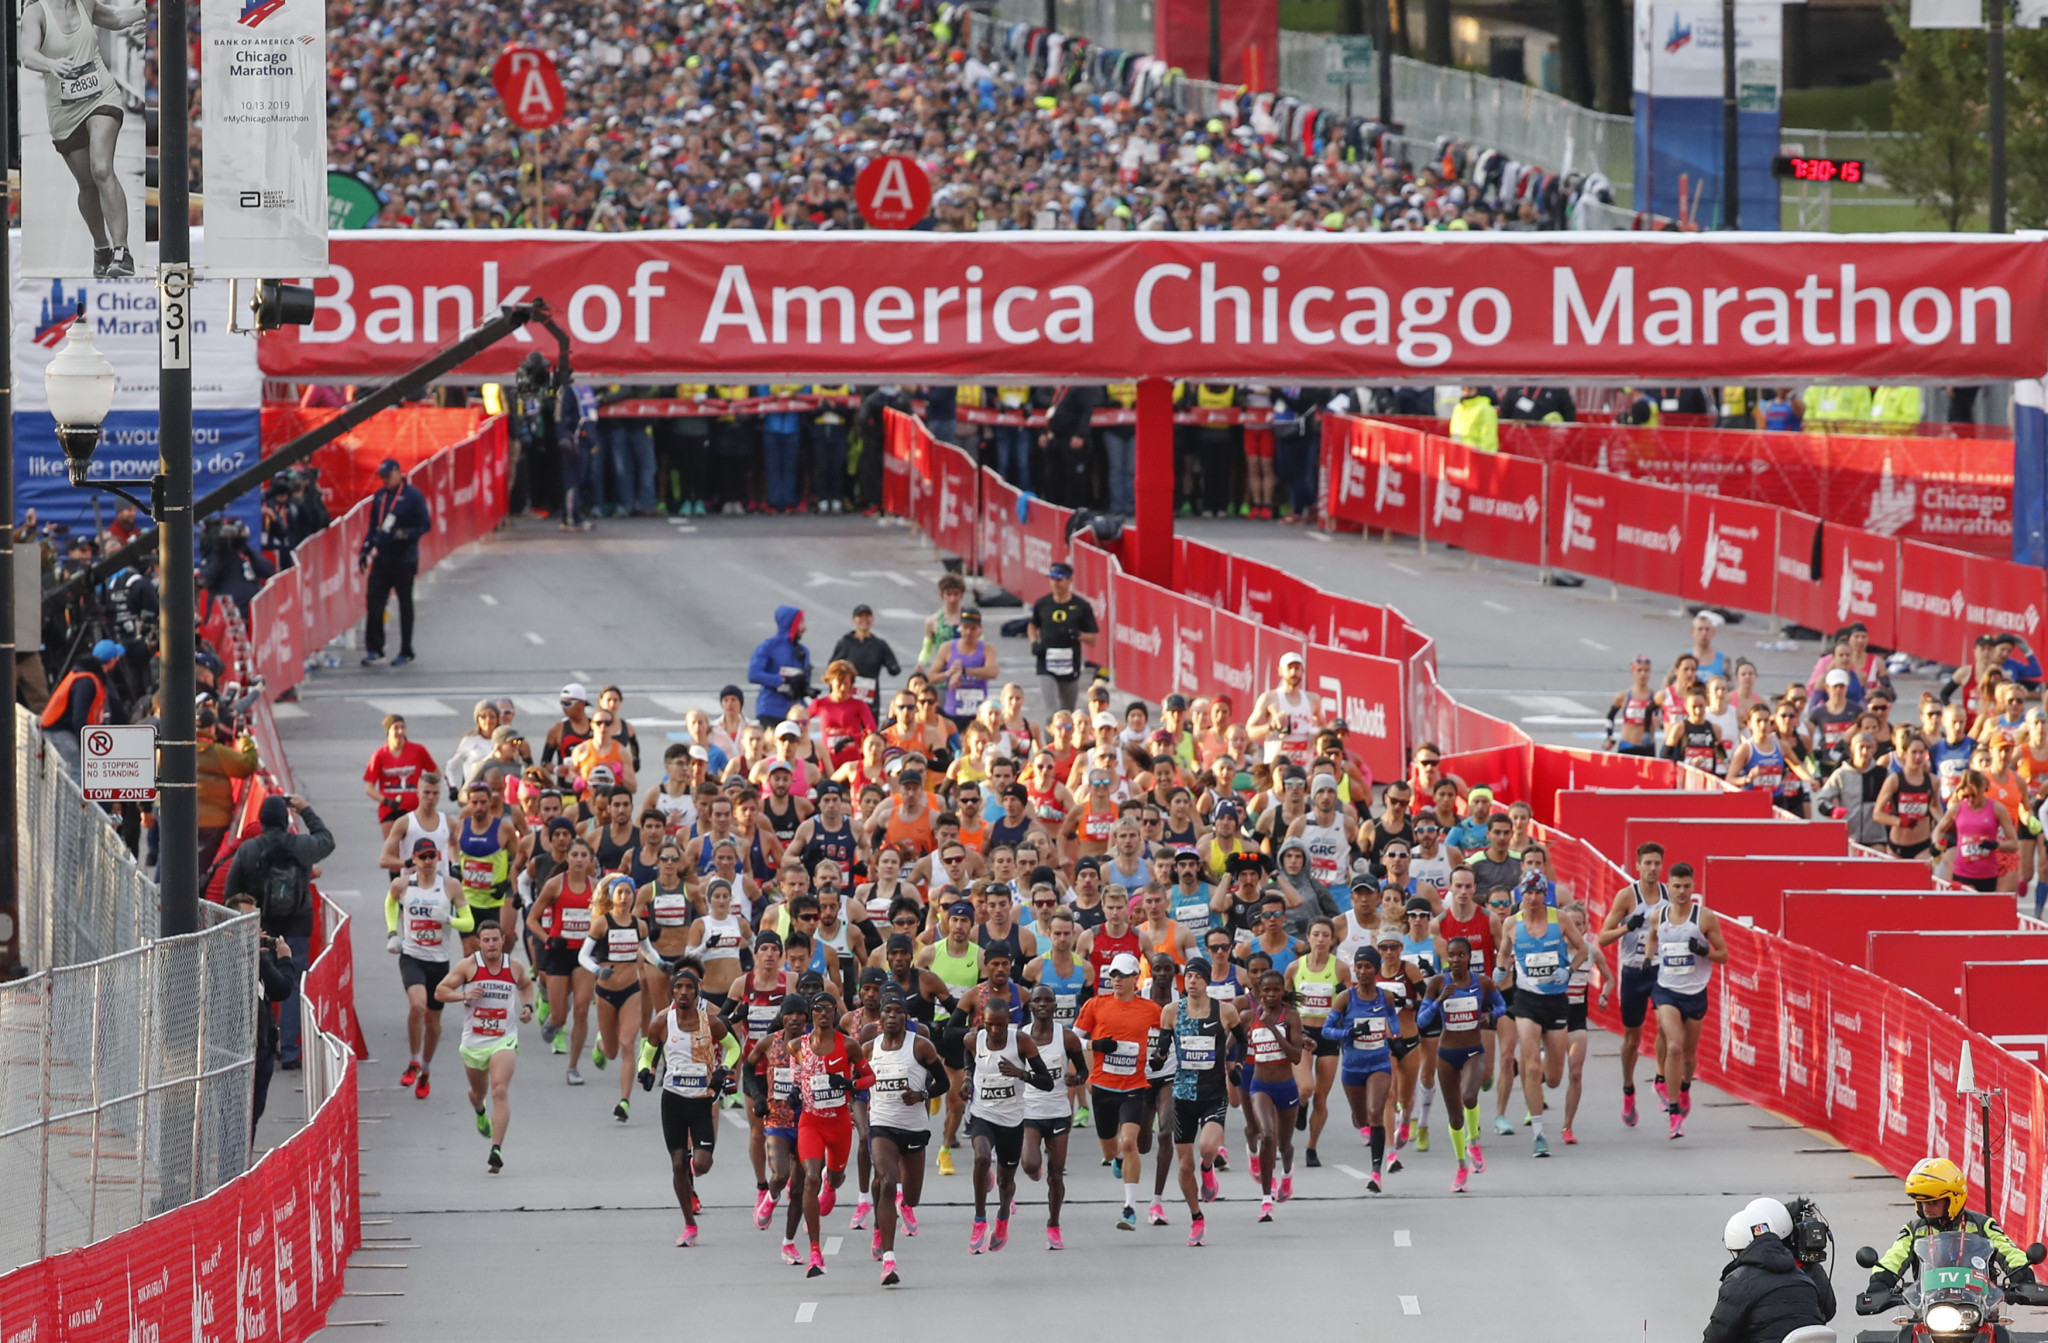 The Chicago Marathon and Boston Marathon are now set to be run on back-to-back days ©Getty Images